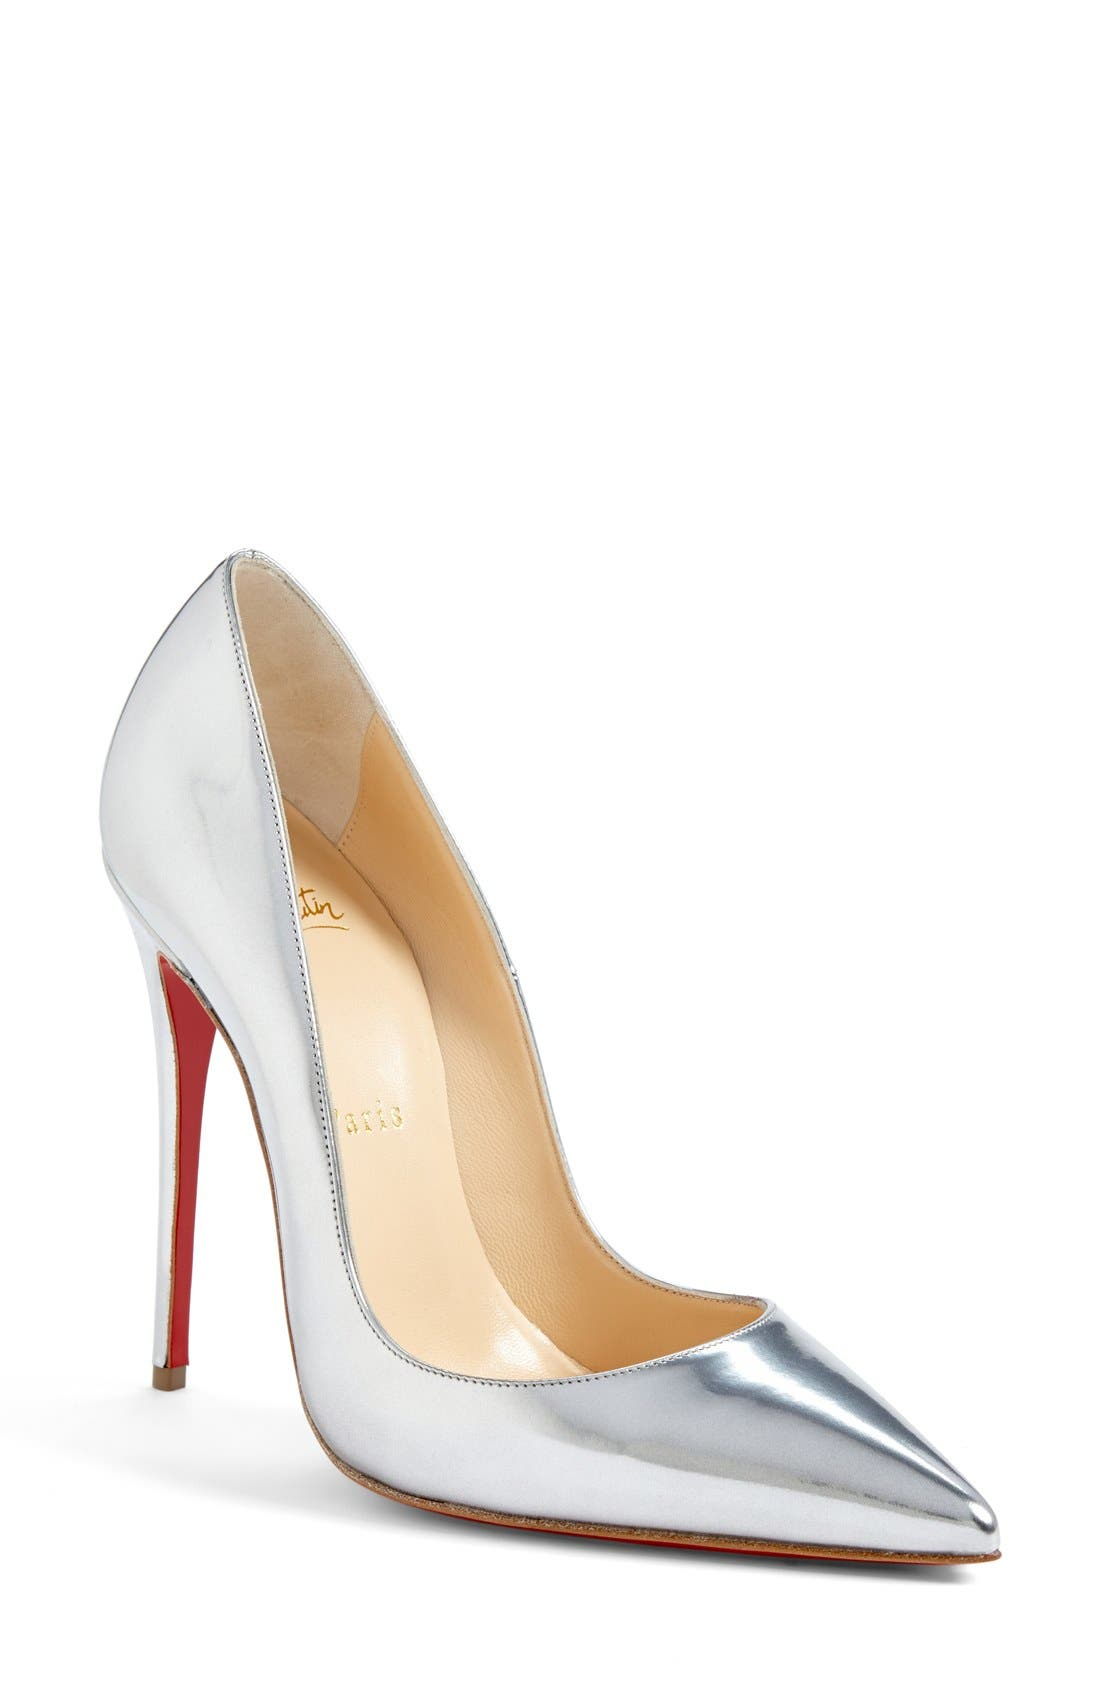 'So Kate' Pointy Toe Pump,                         Main,                         color, 040